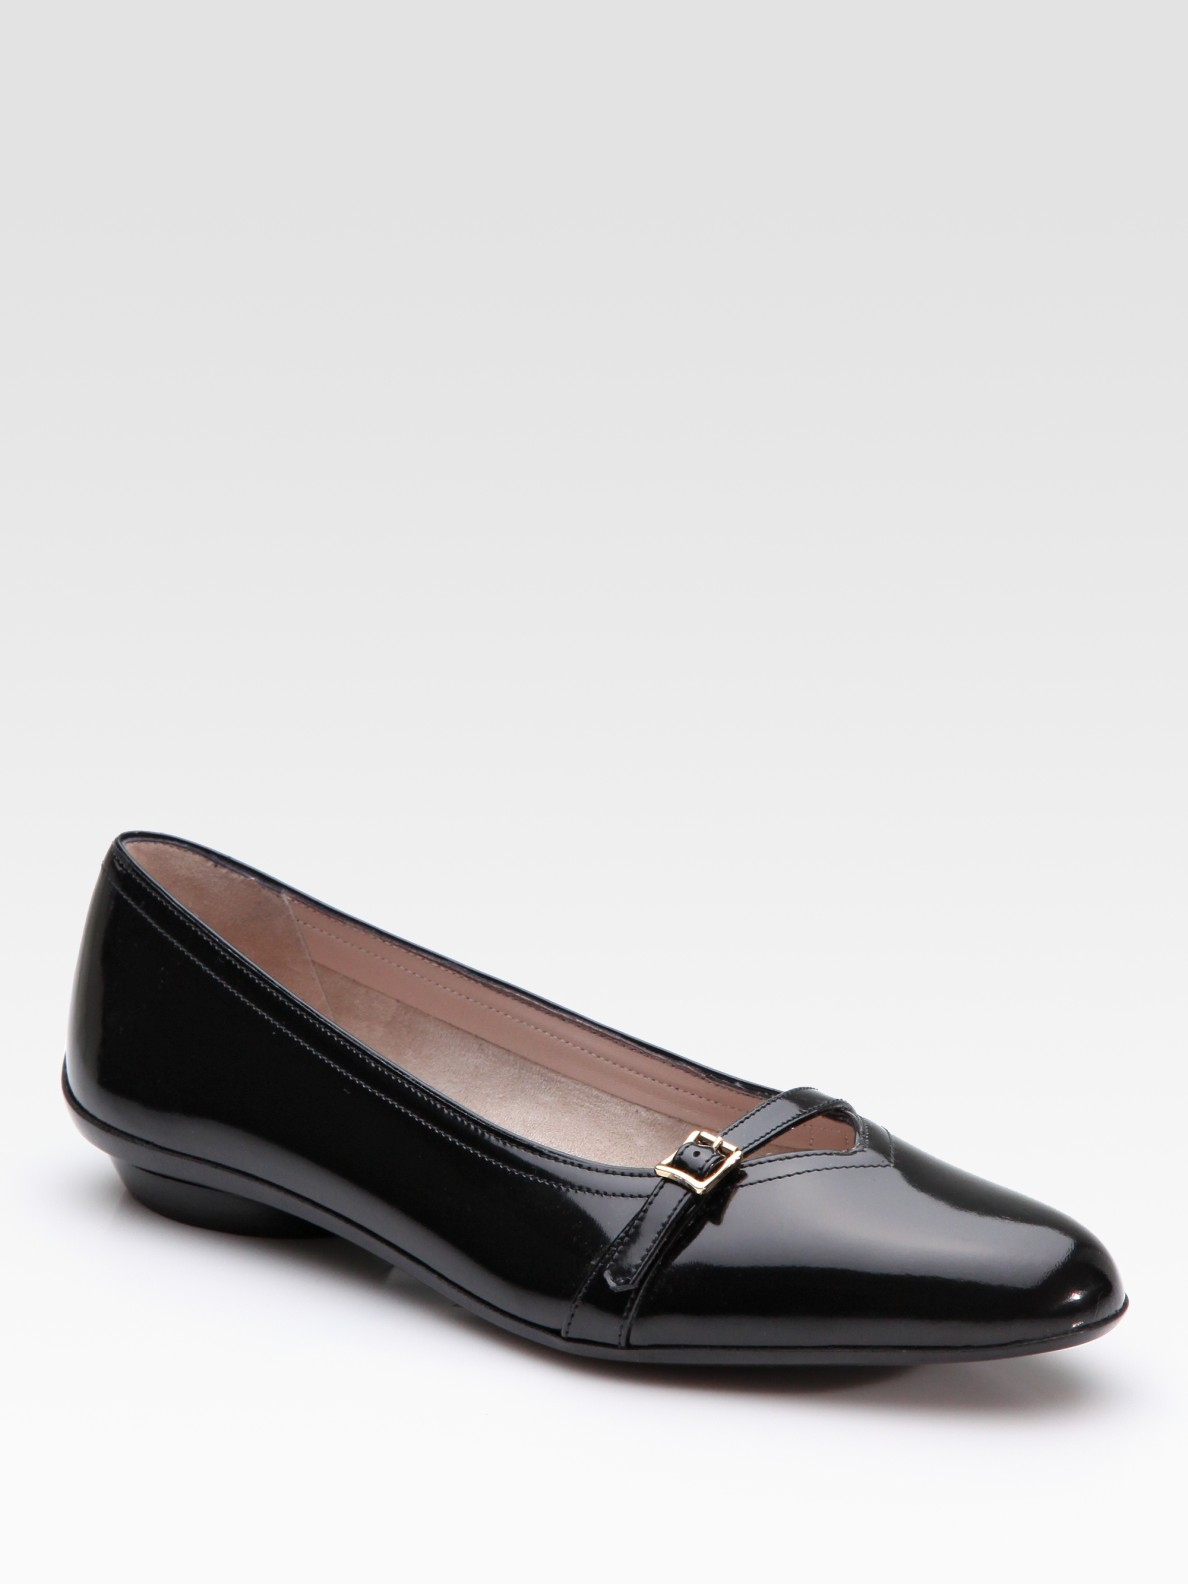 Loretta Black Patent Mary Jane Shoes